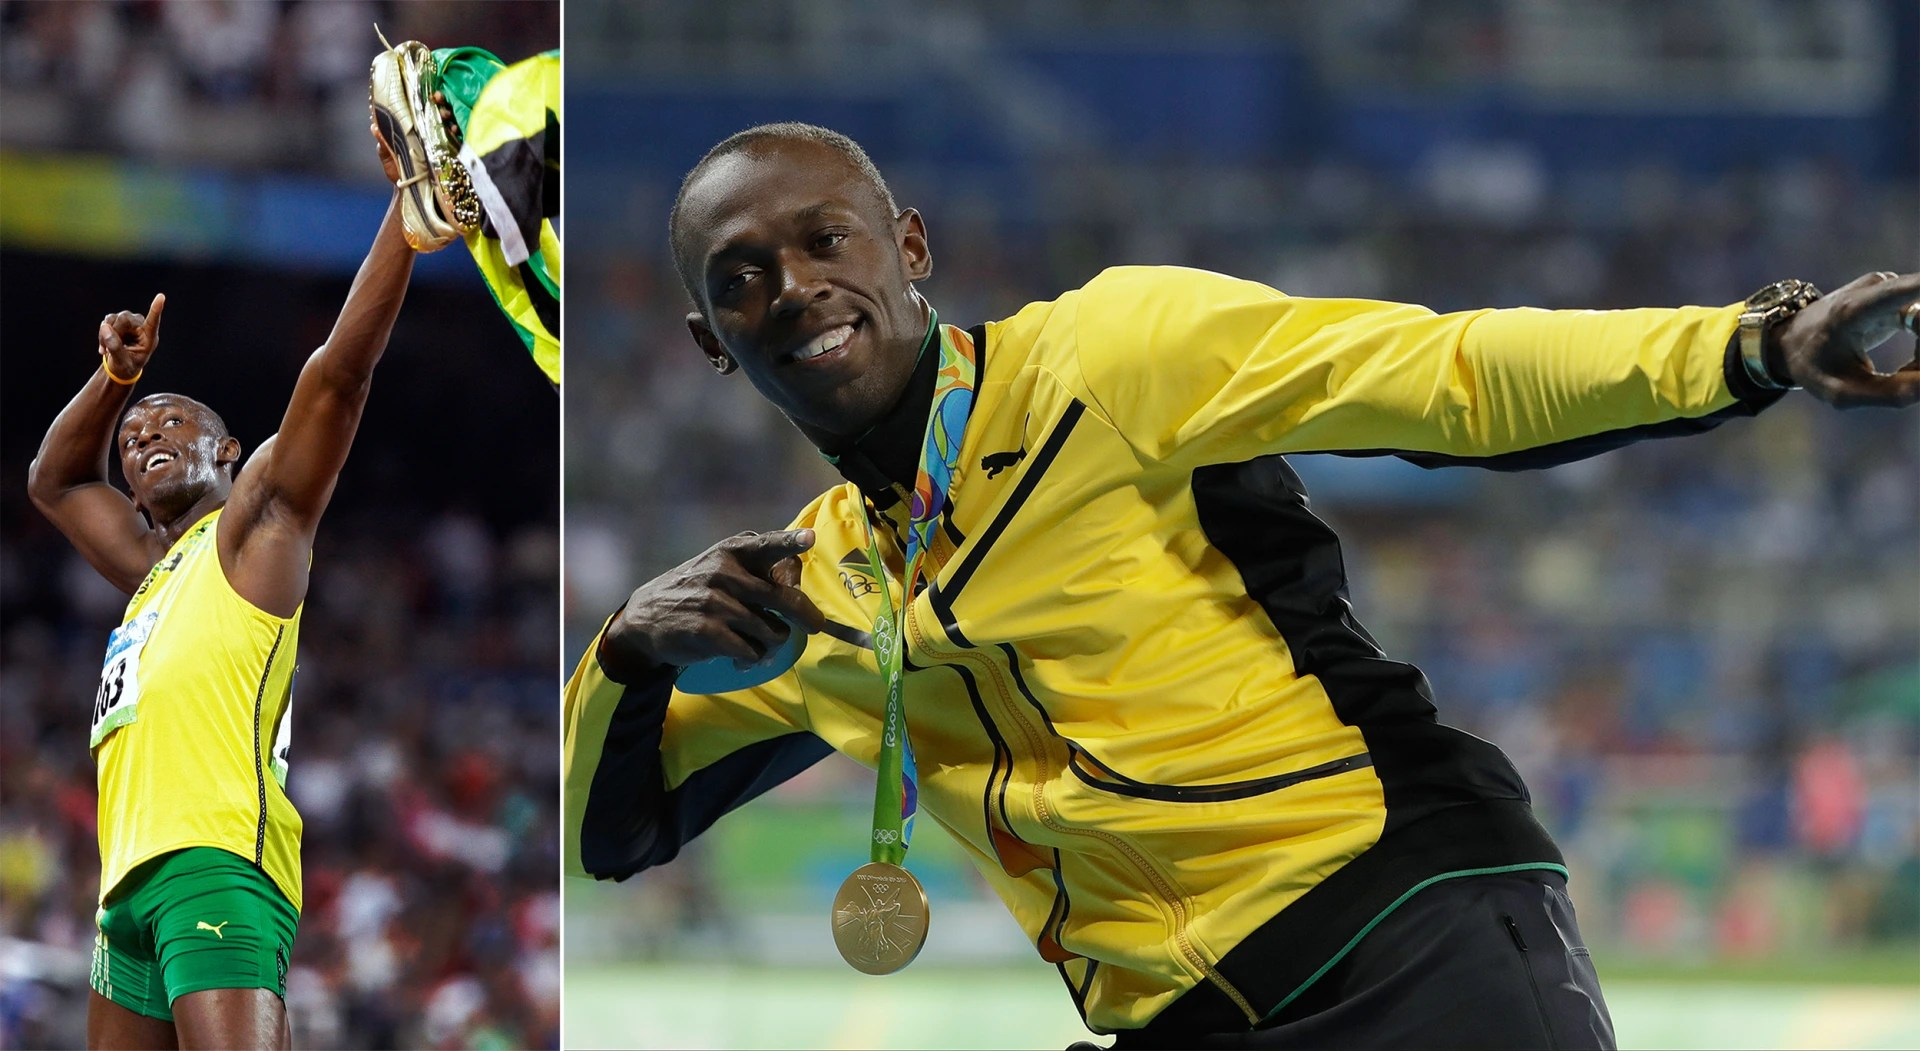 Olympic Athletes Now And Then